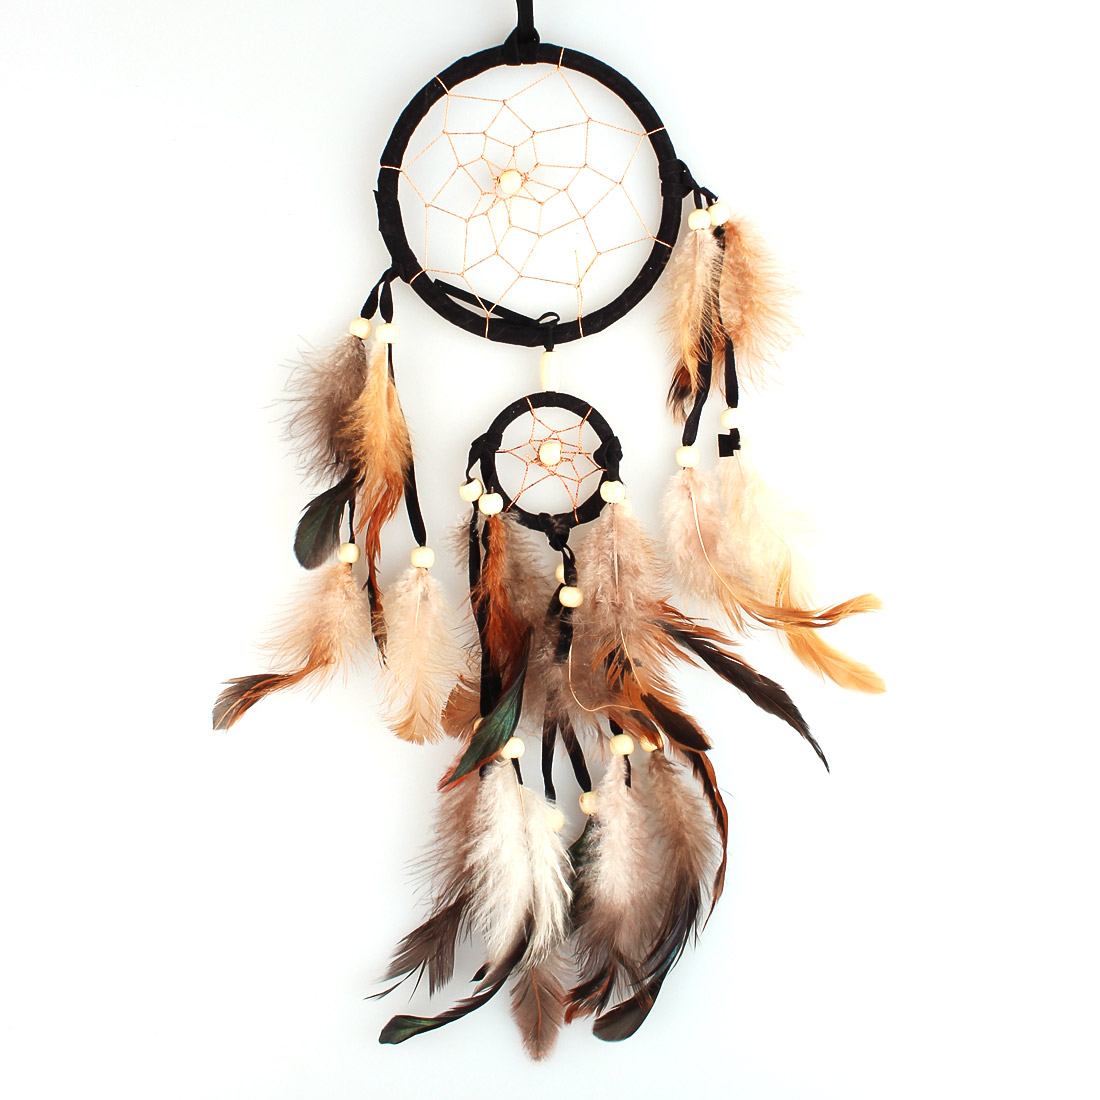 Dream Catcher with Feather Hanging,Indian Style,Handmade Decoration,11cm/4.33inch Diameter,45cm/17.72inch Long  - Black